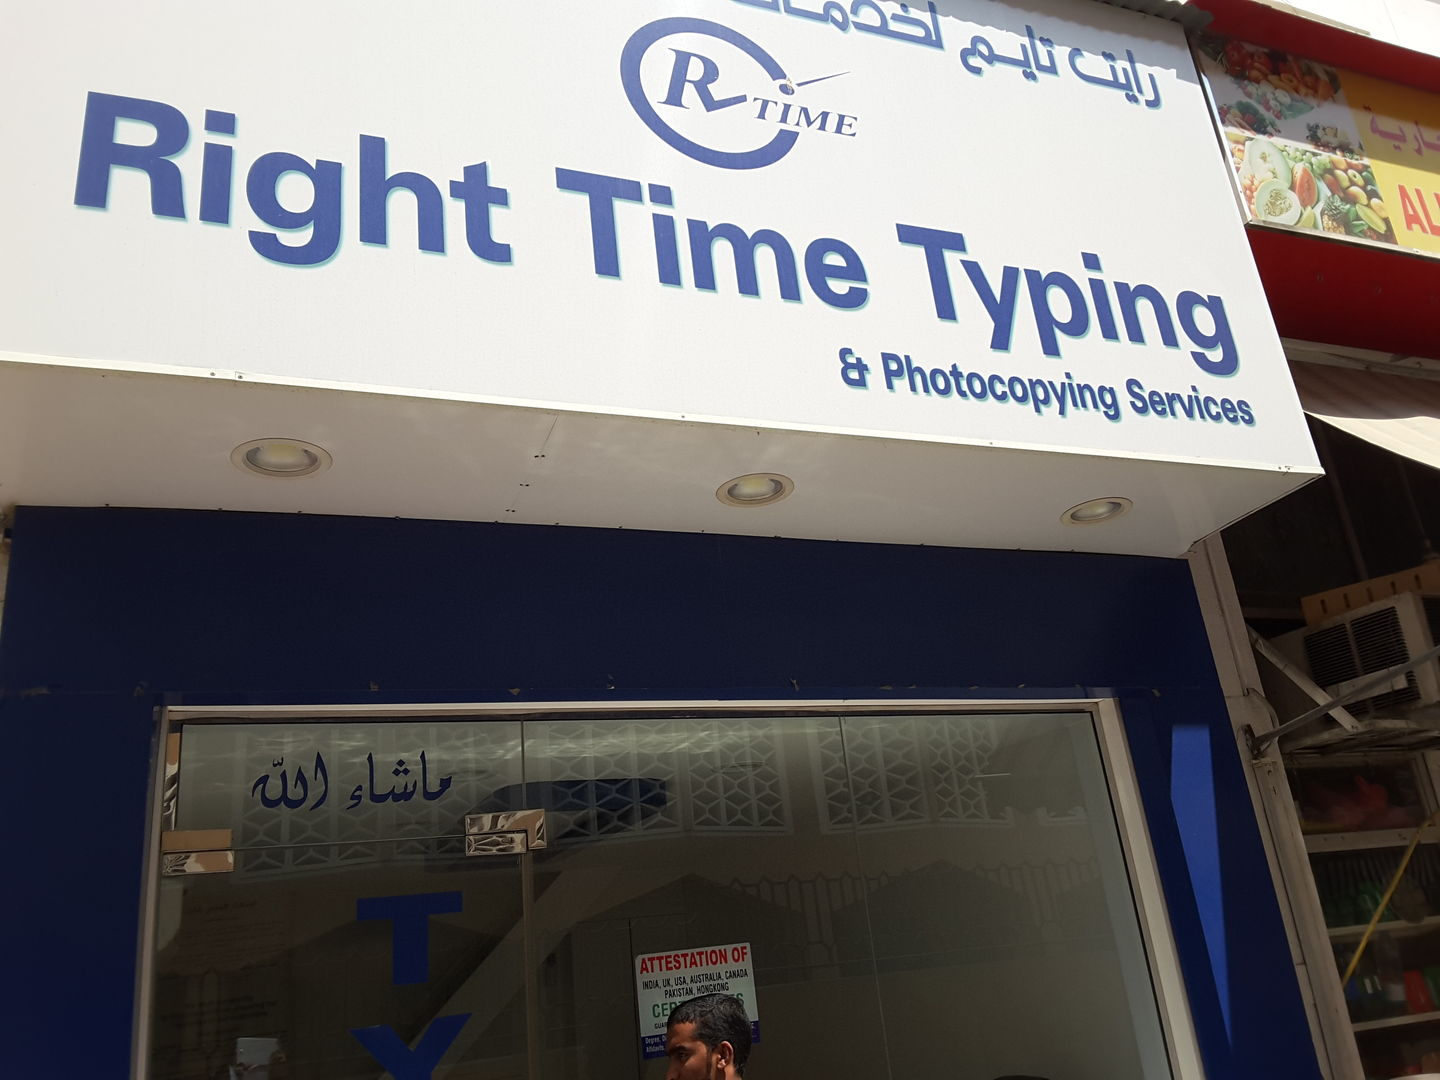 Walif-business-right-time-typing-photocopying-services